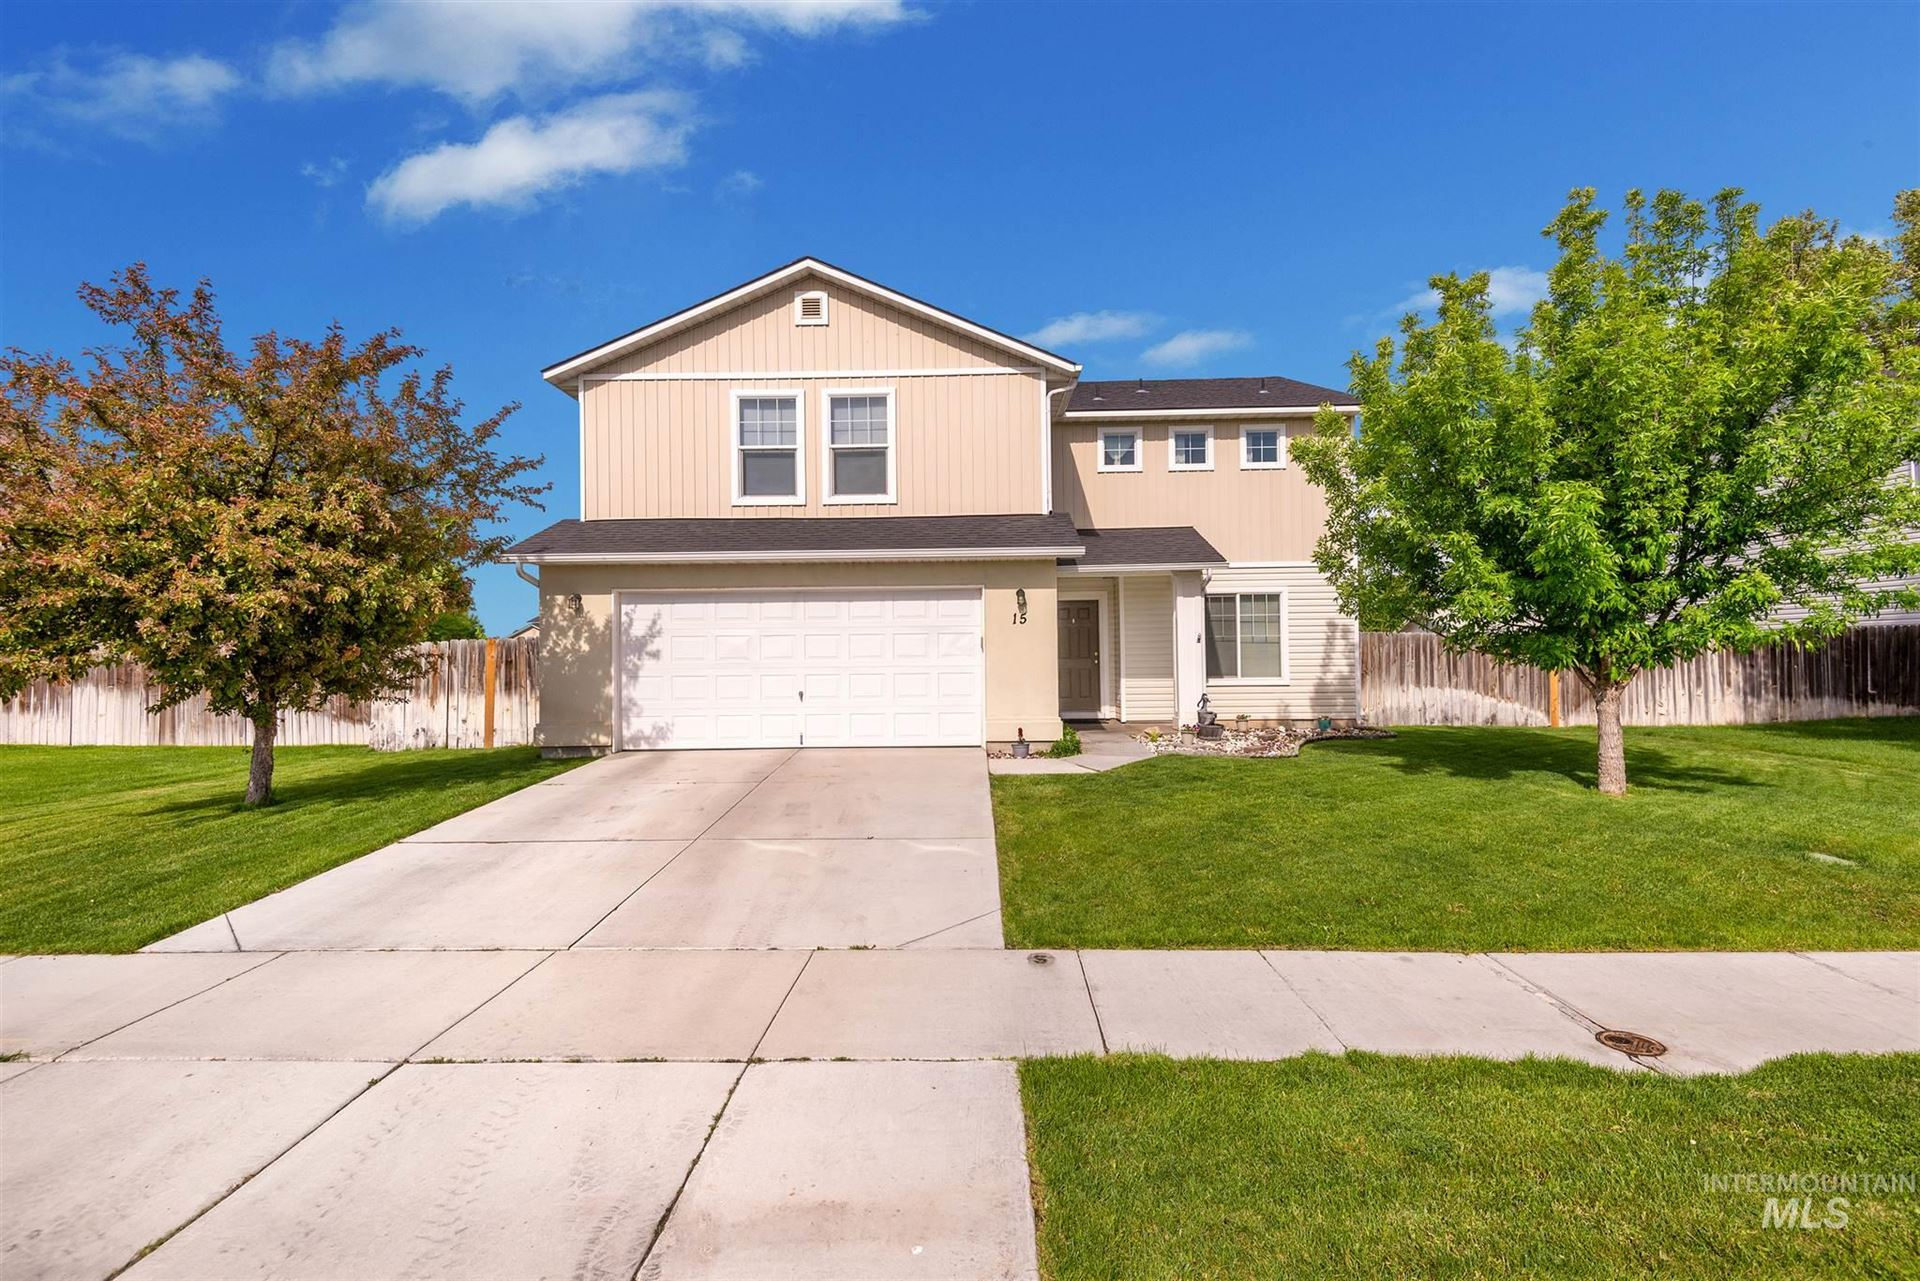 15 S. Heritage Pointe Ln, Nampa, ID 83651 - MLS#: 98766652